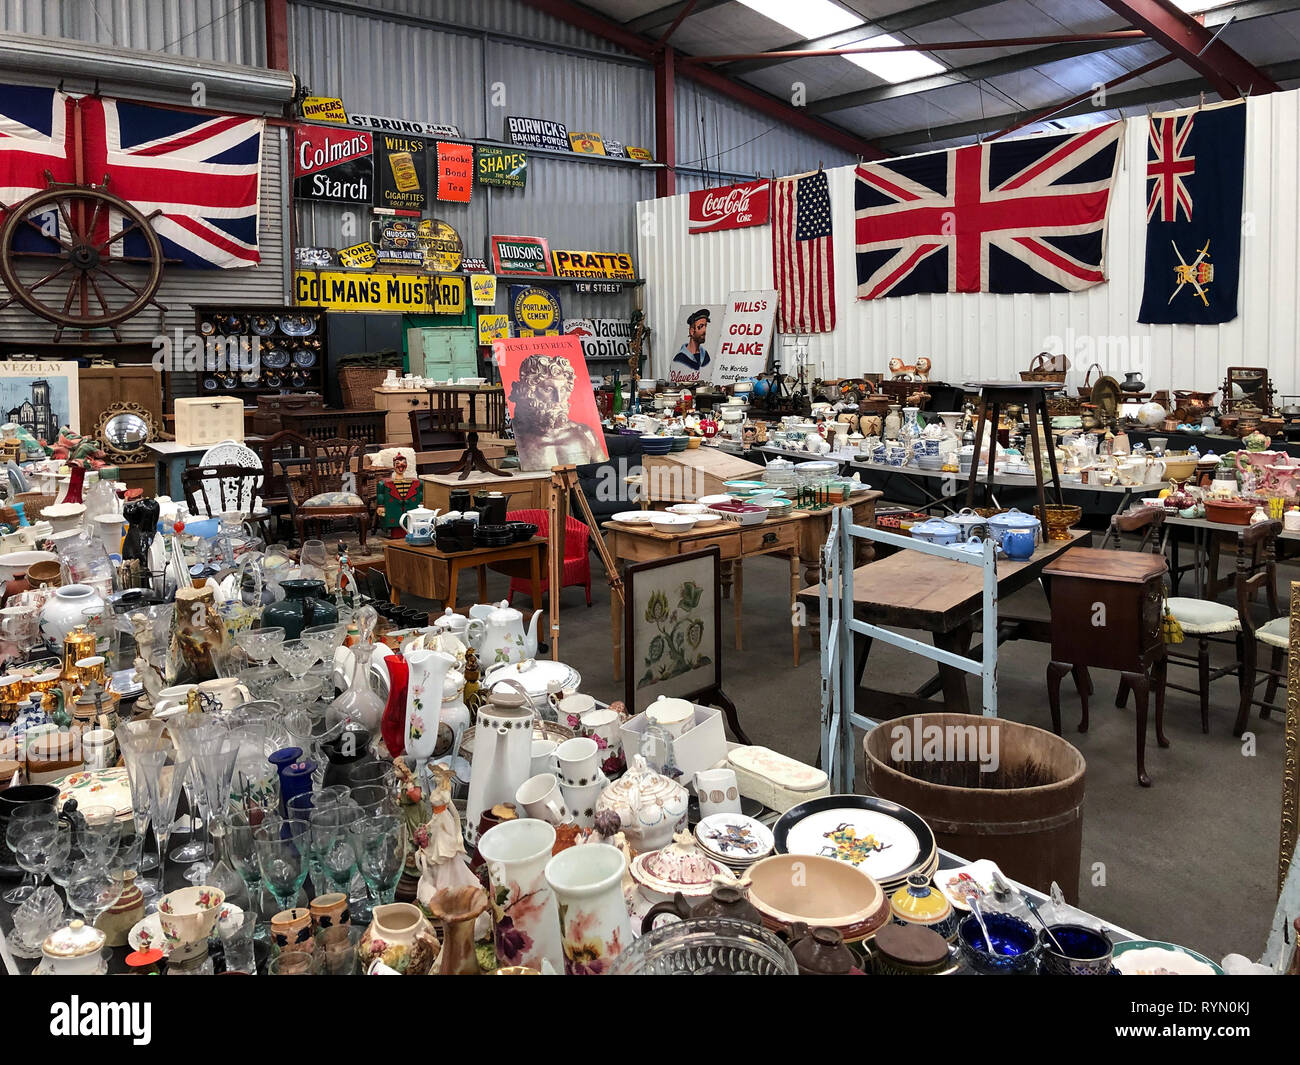 Antiques Market or Junk Shop full of old items for sale. Stock Photo